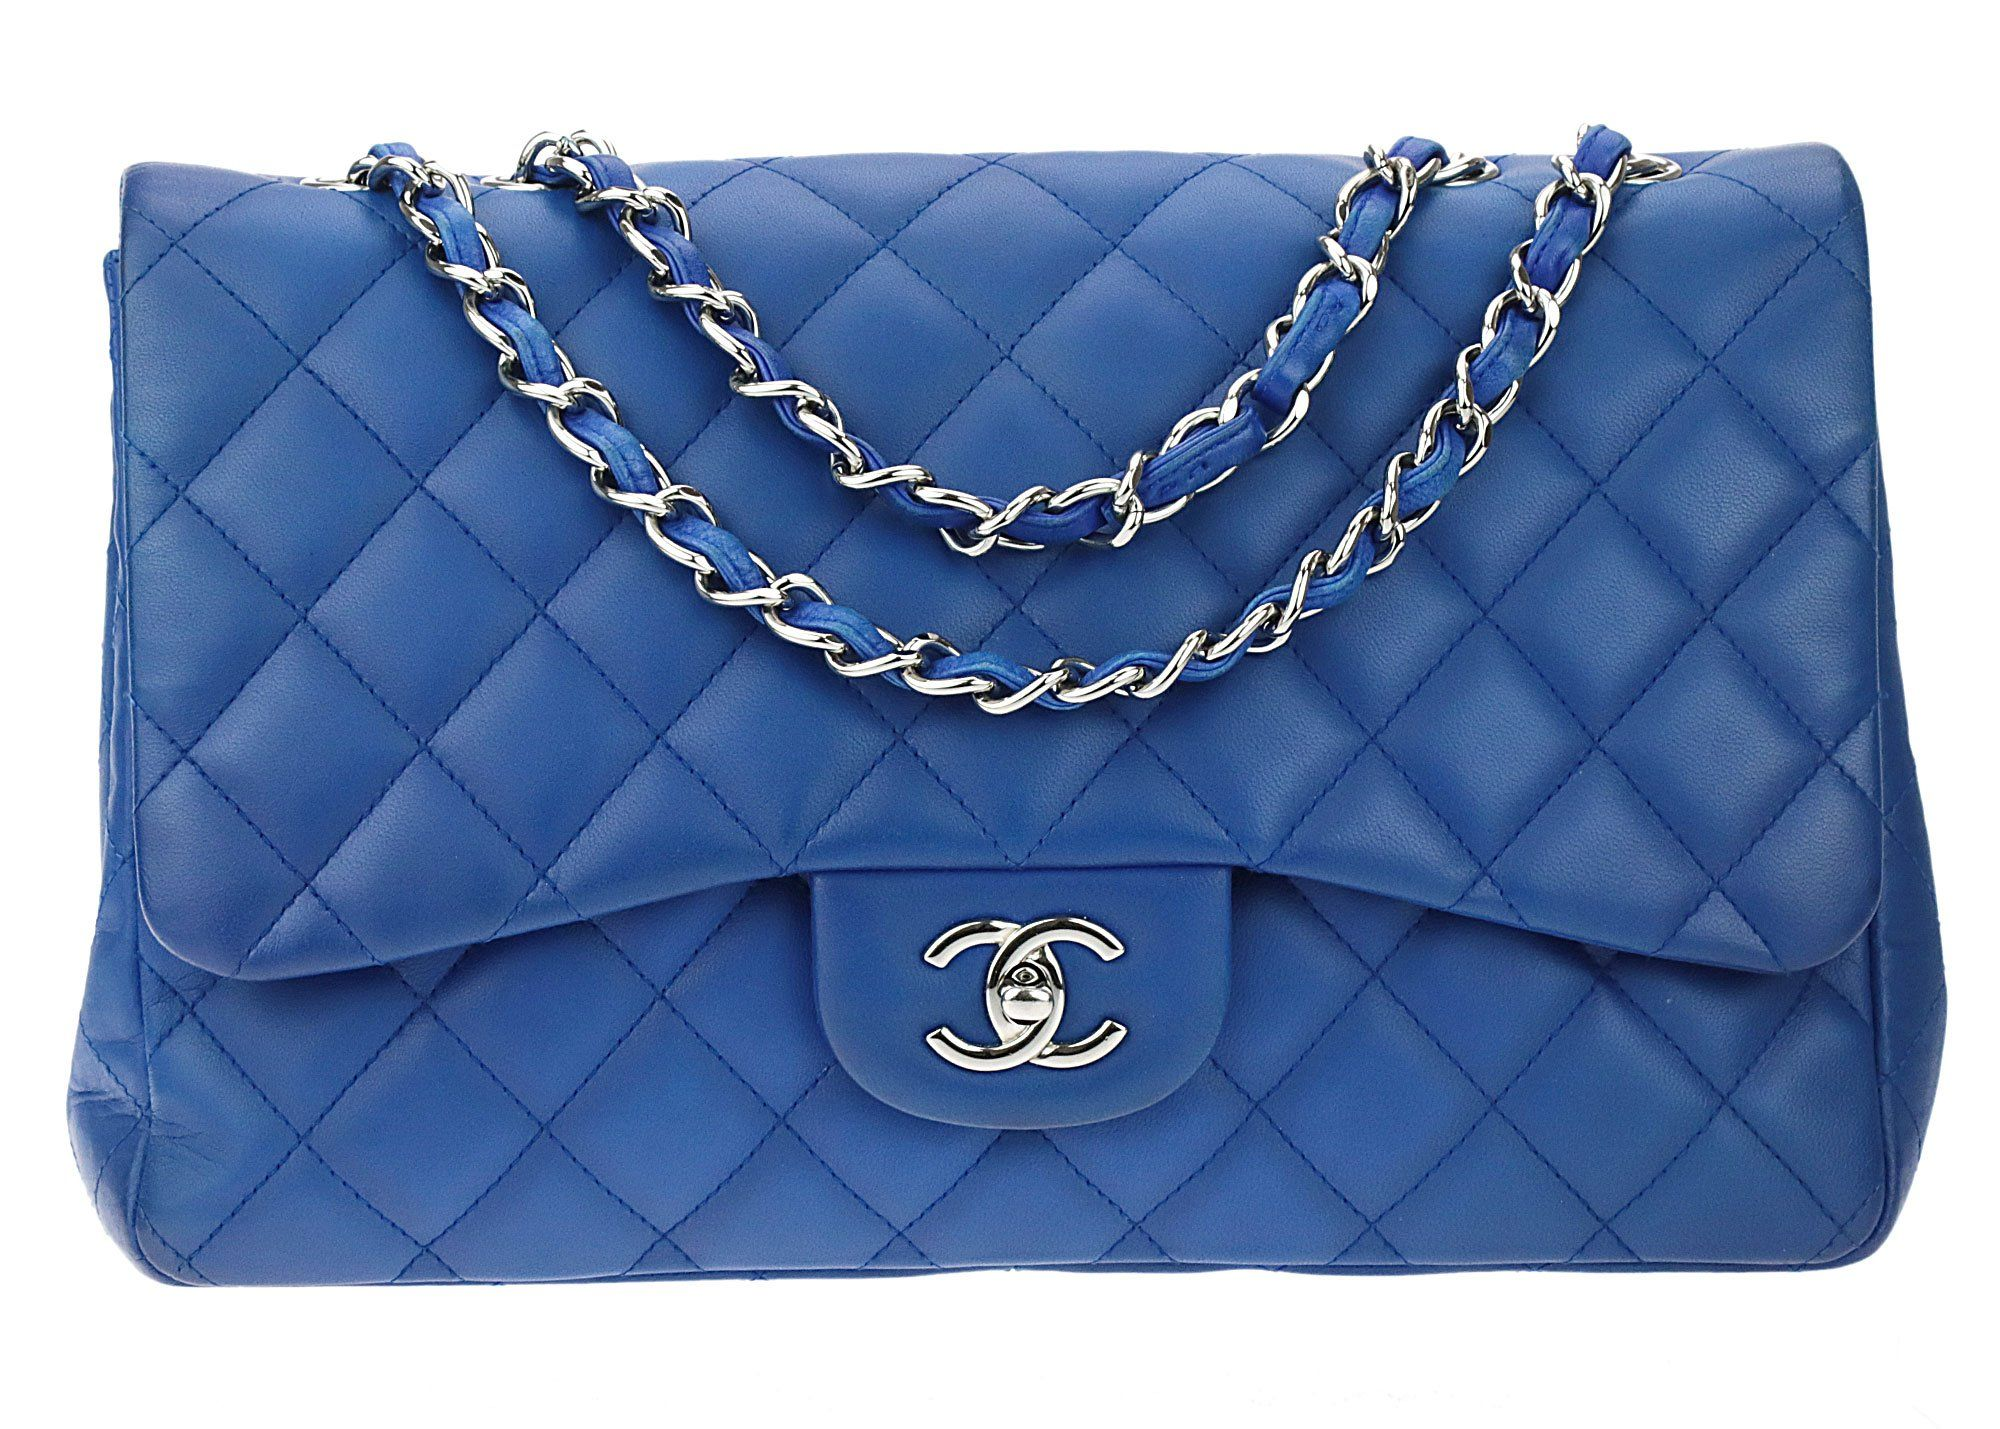 ac461471c73c Chanel Cobalt Blue Quilted Lambskin Leather Jumbo Single Flap Bag ...